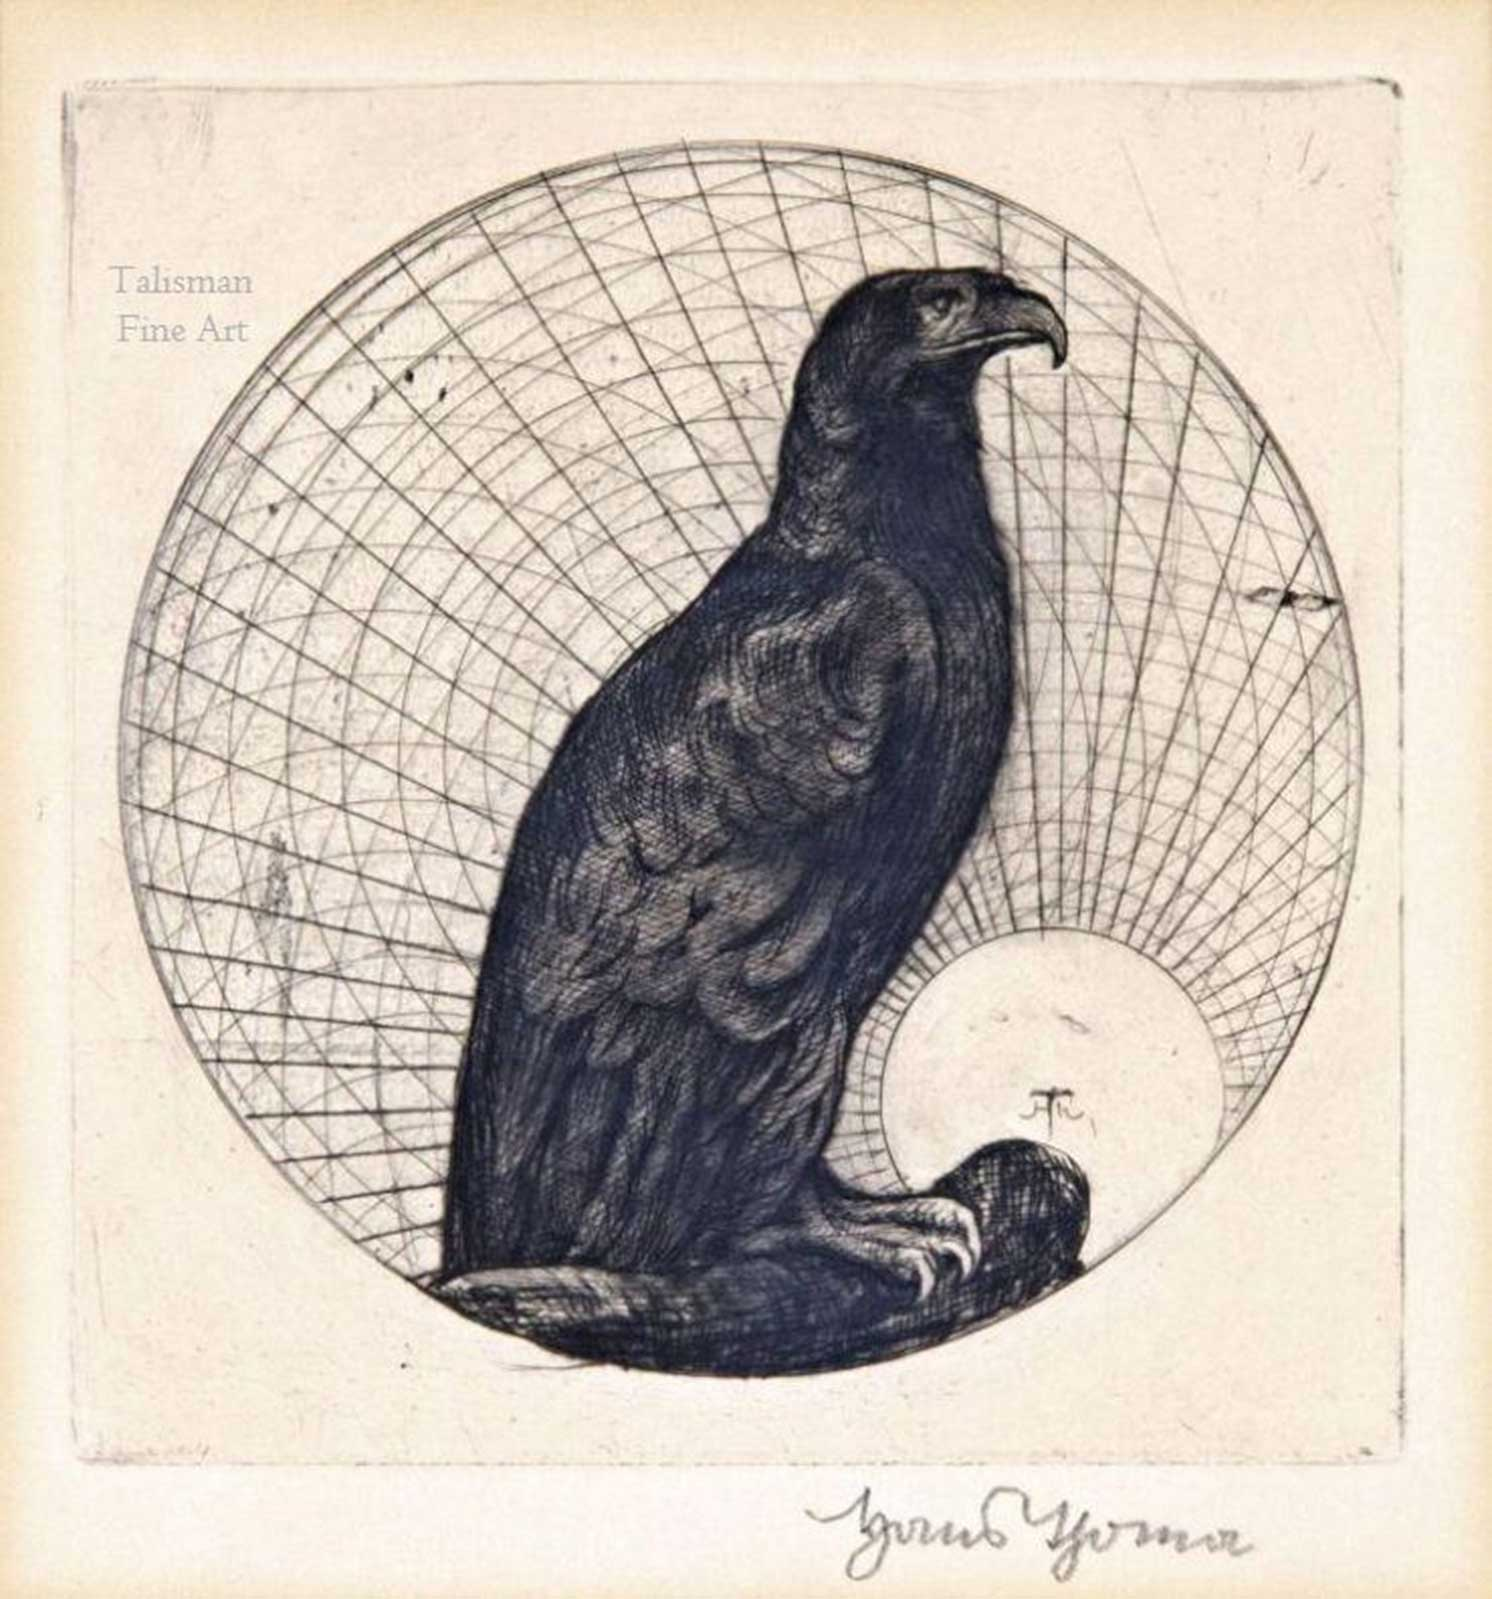 Talusman Fine Art Hans Thoma, etching, 'Sas' (Eagle) (c.1901)  SOLD